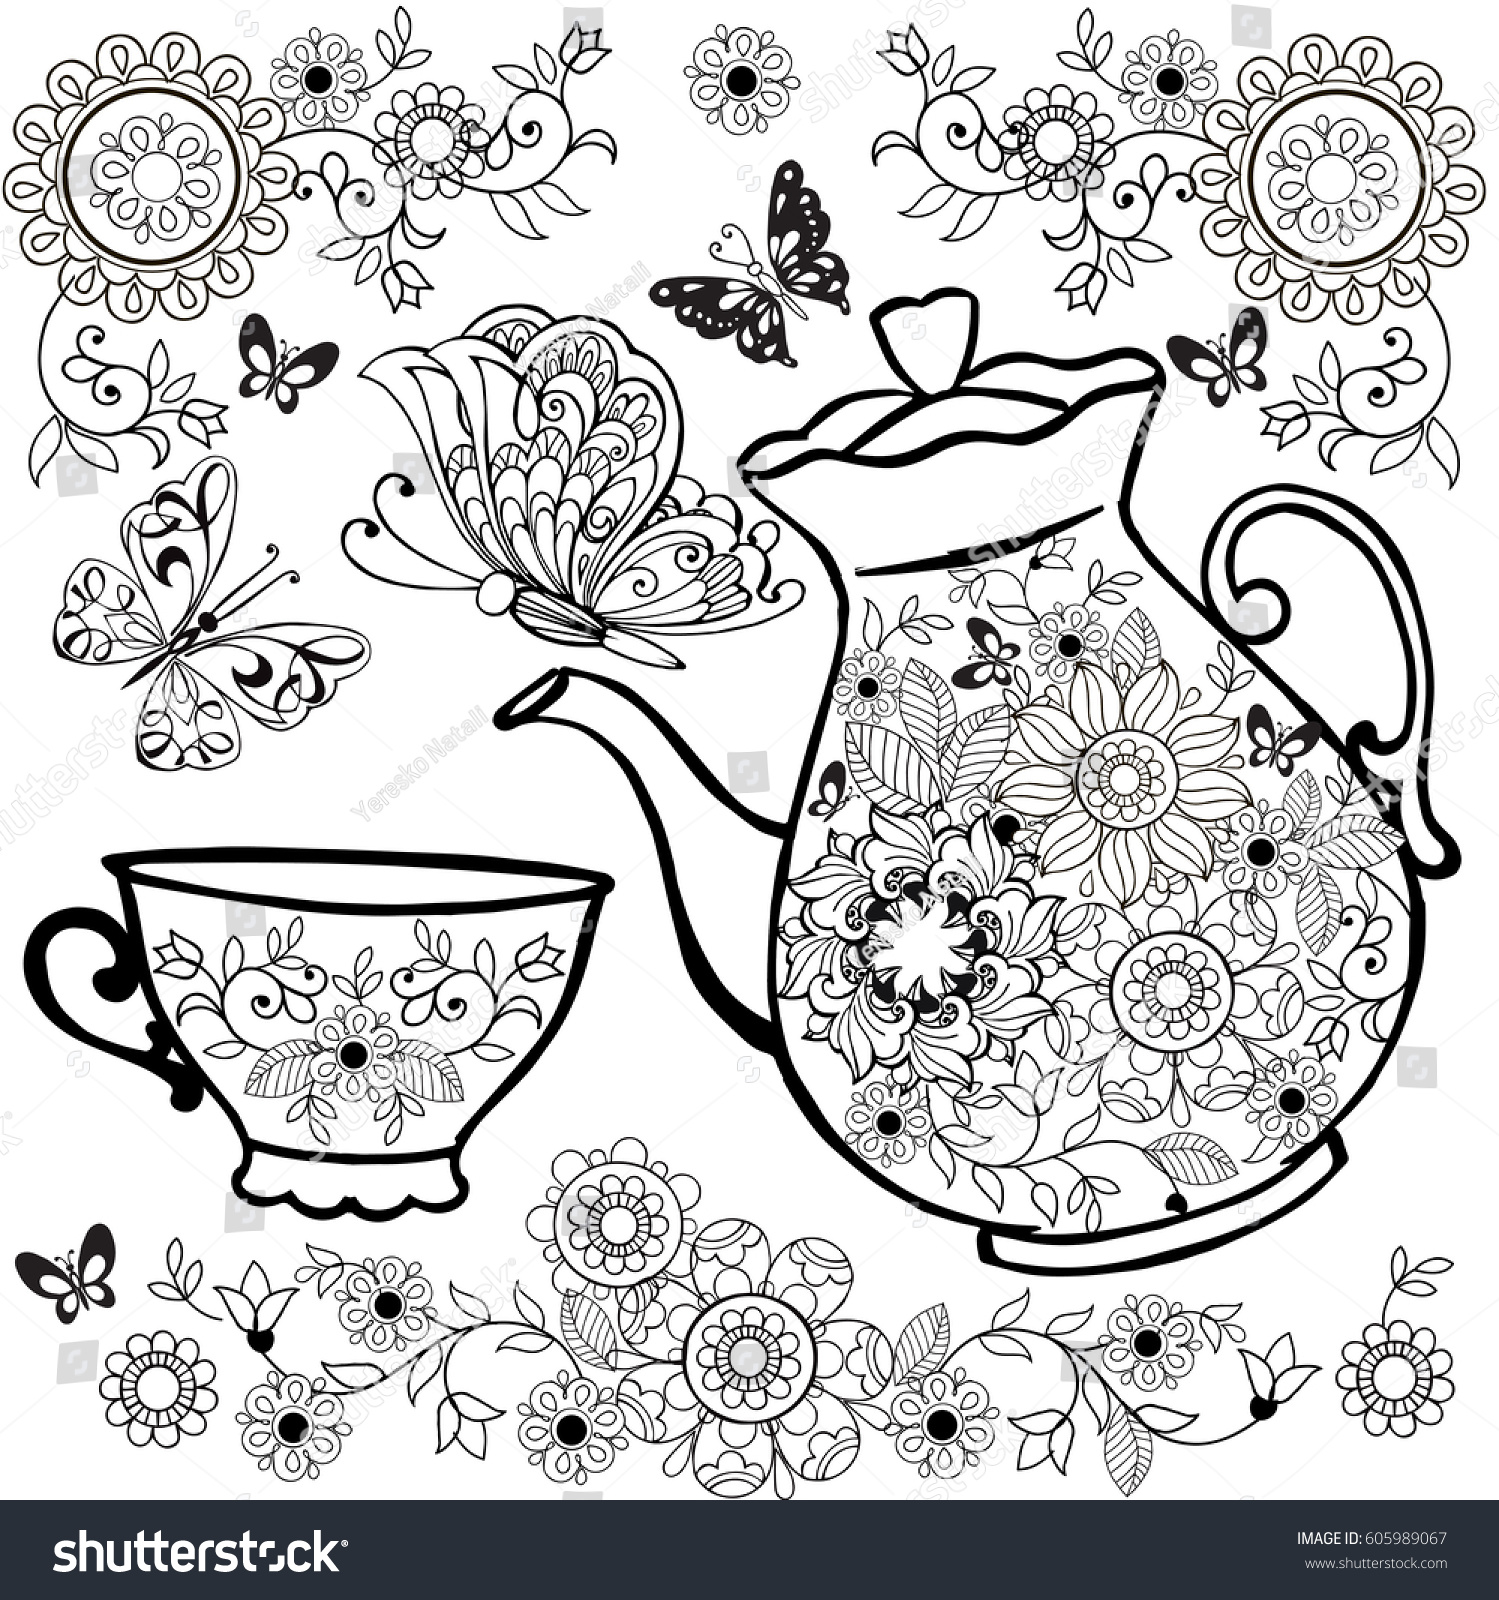 Flower Tea Teapot Coloring Pages Flowers Stock Vector 605989067 ...